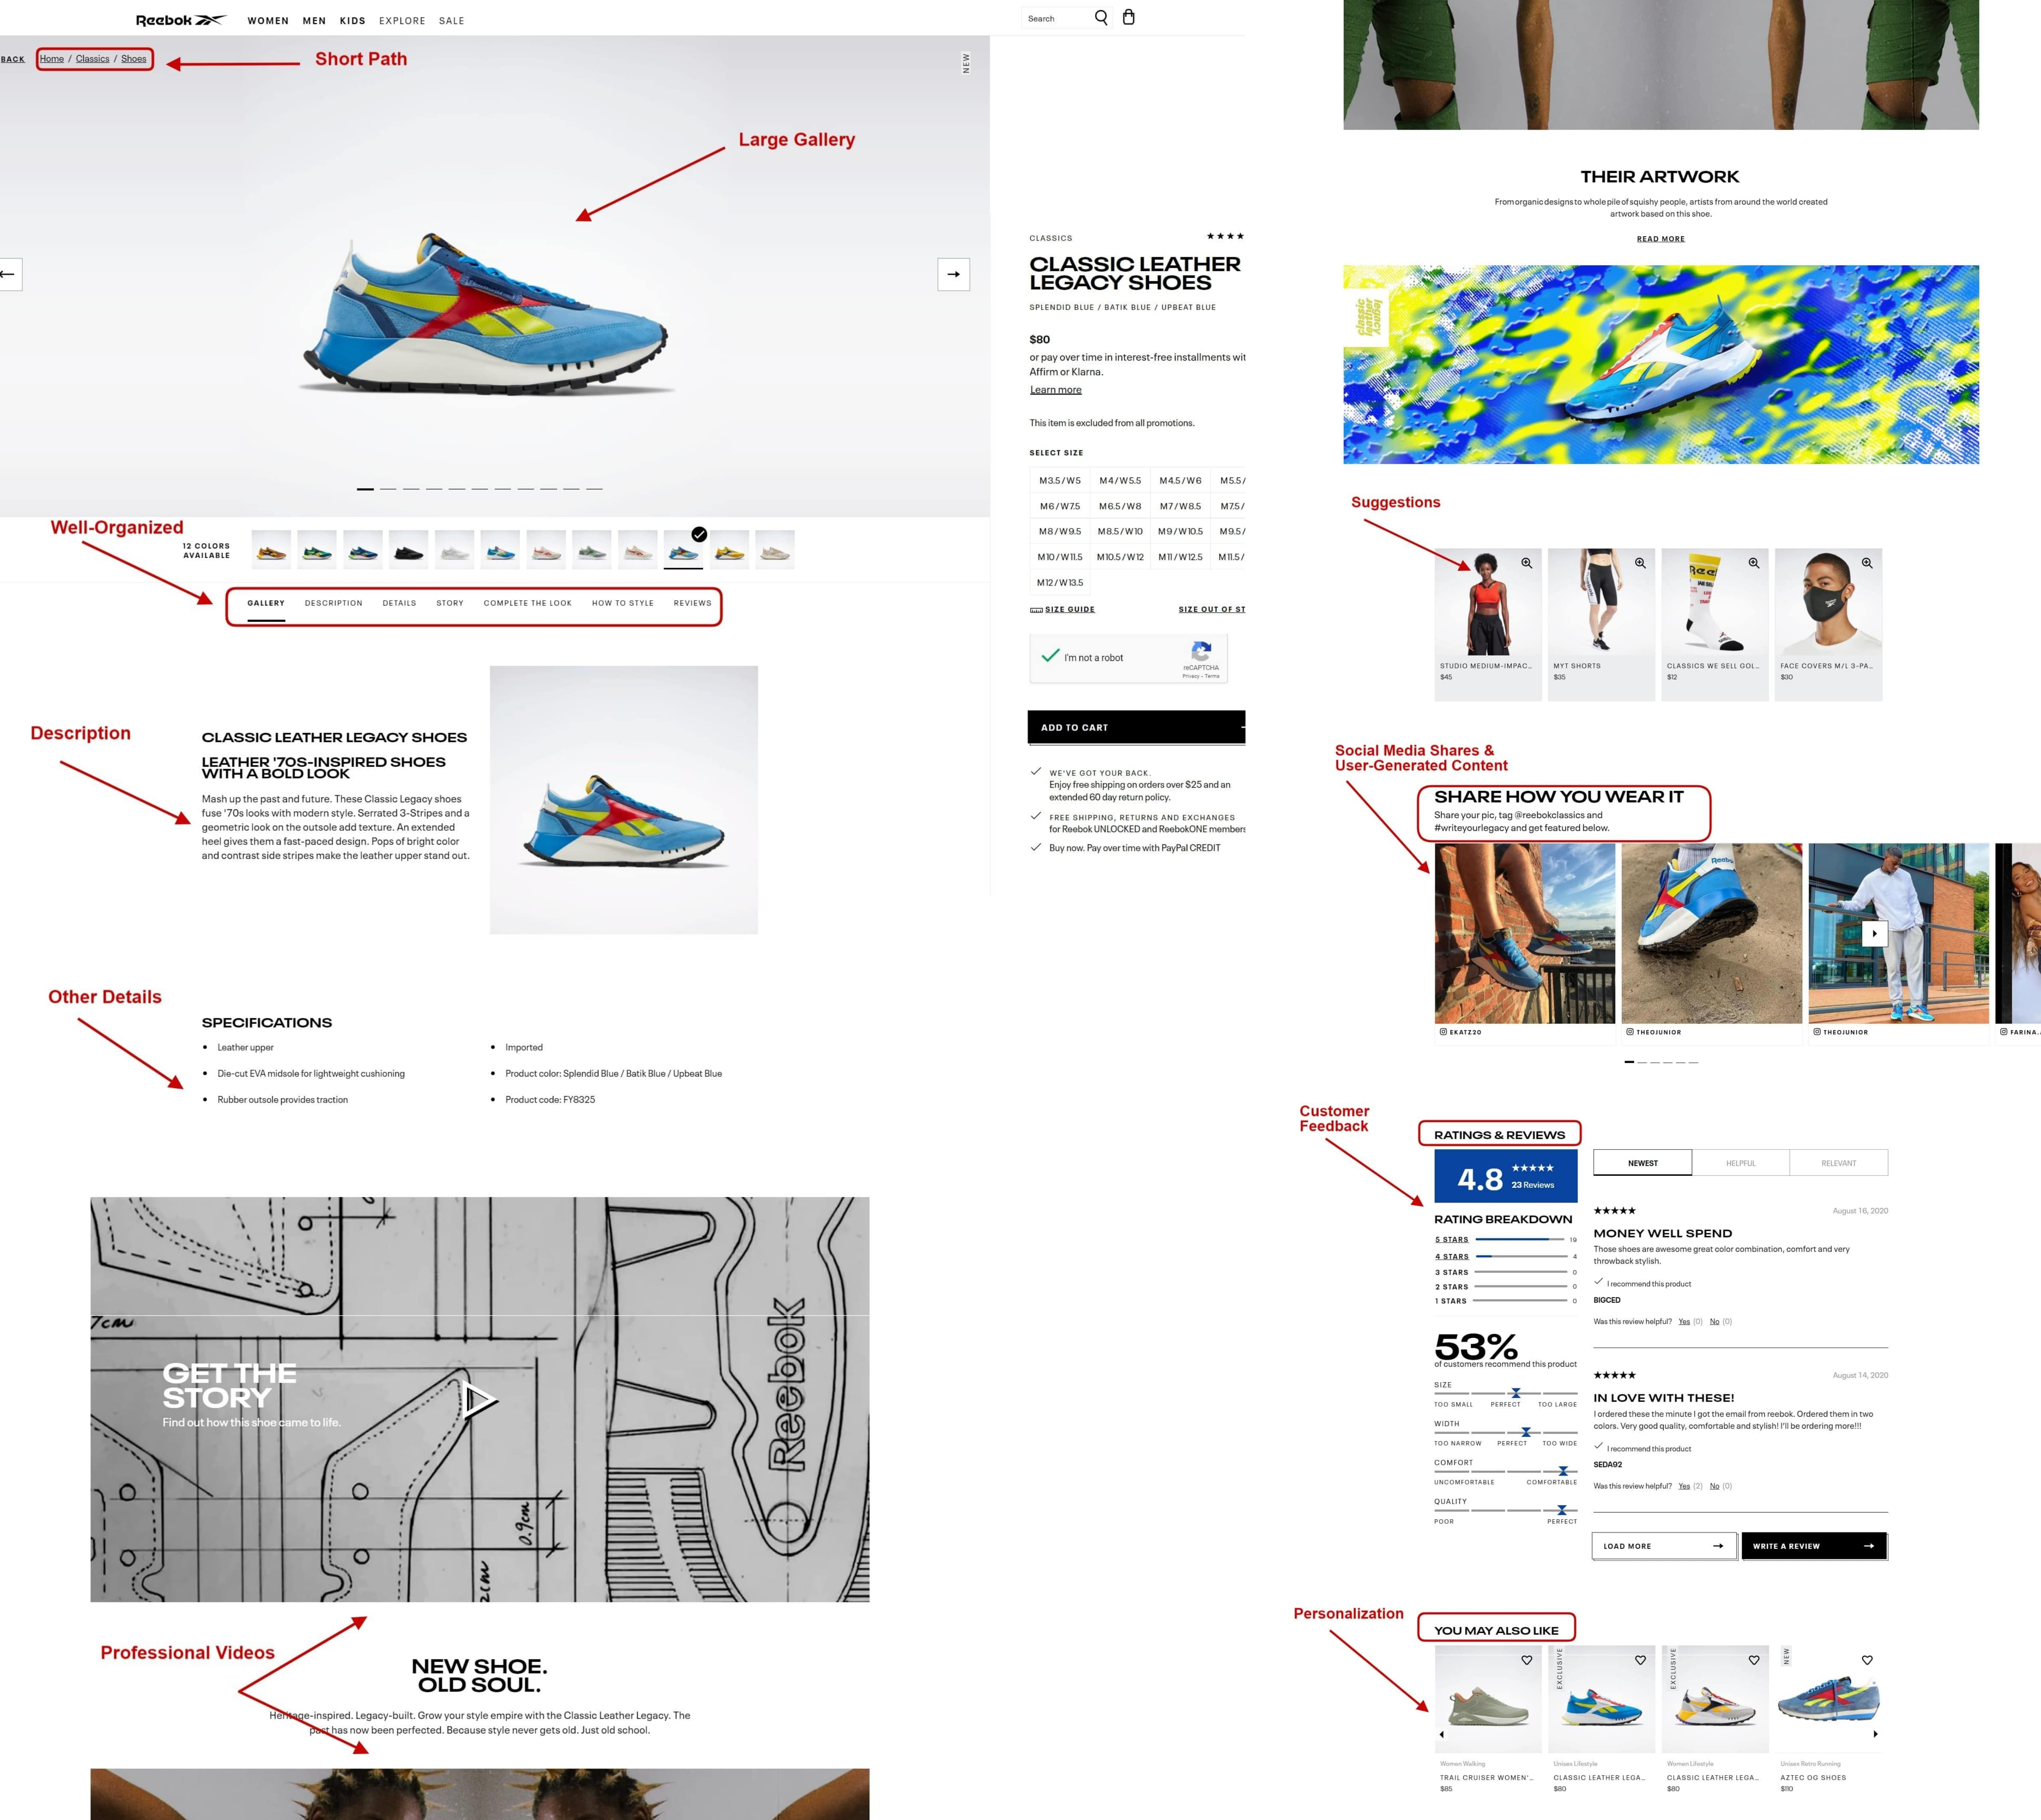 Avoid eCommerce mistakes Screenshot from the official Reebok website